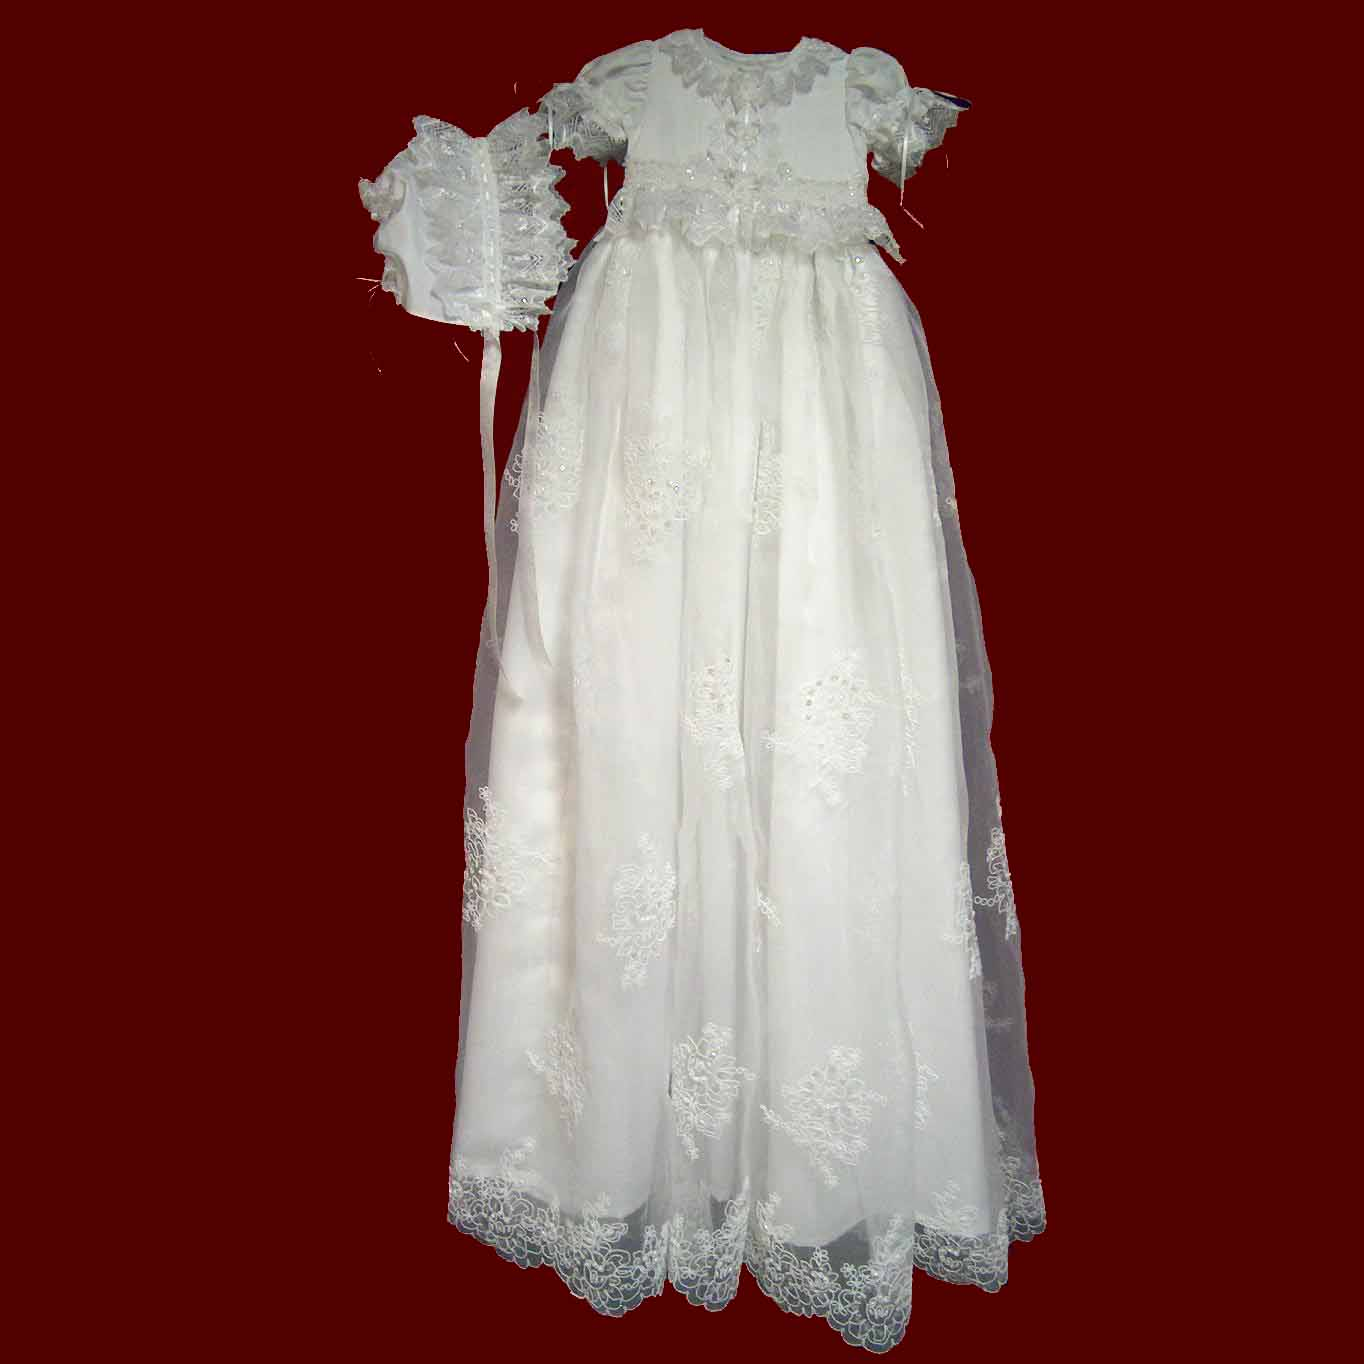 Beaded Organza Girls Christening Ensemble with Detachable Gown